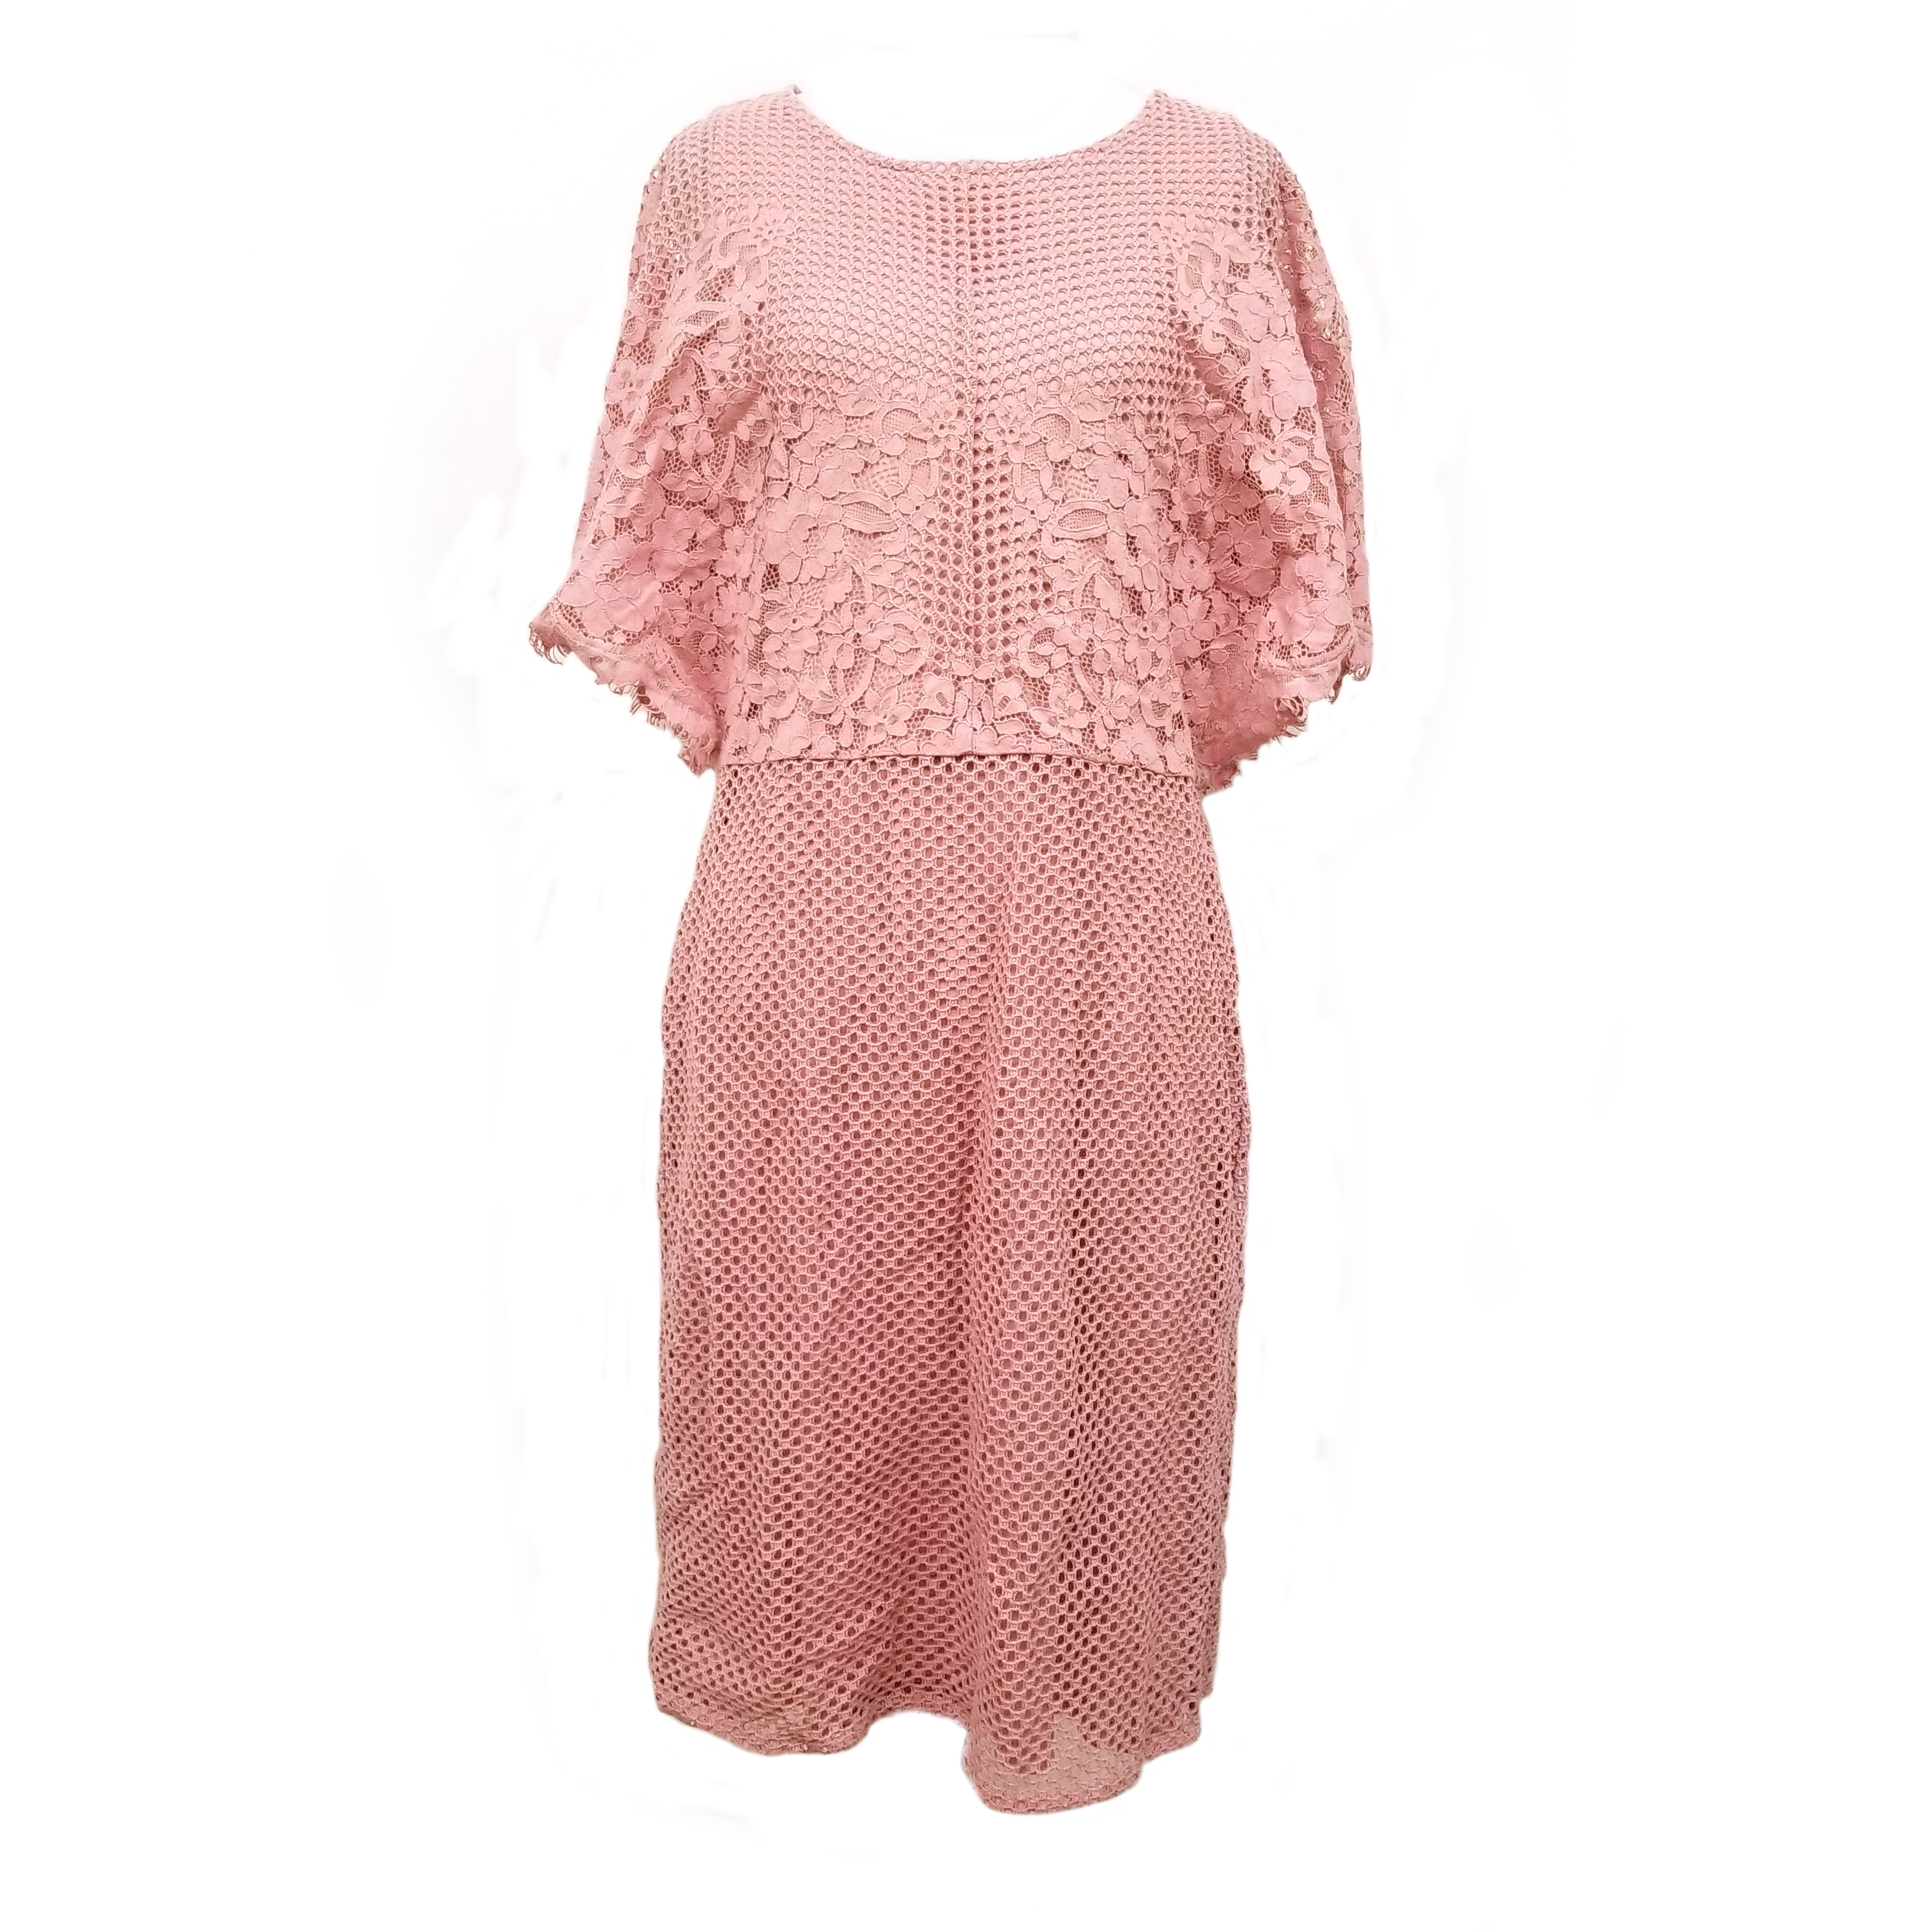 Details About New Womens Dkny Flutter Sleeve Sheath Dress Size 12 Mauve Pink Lace